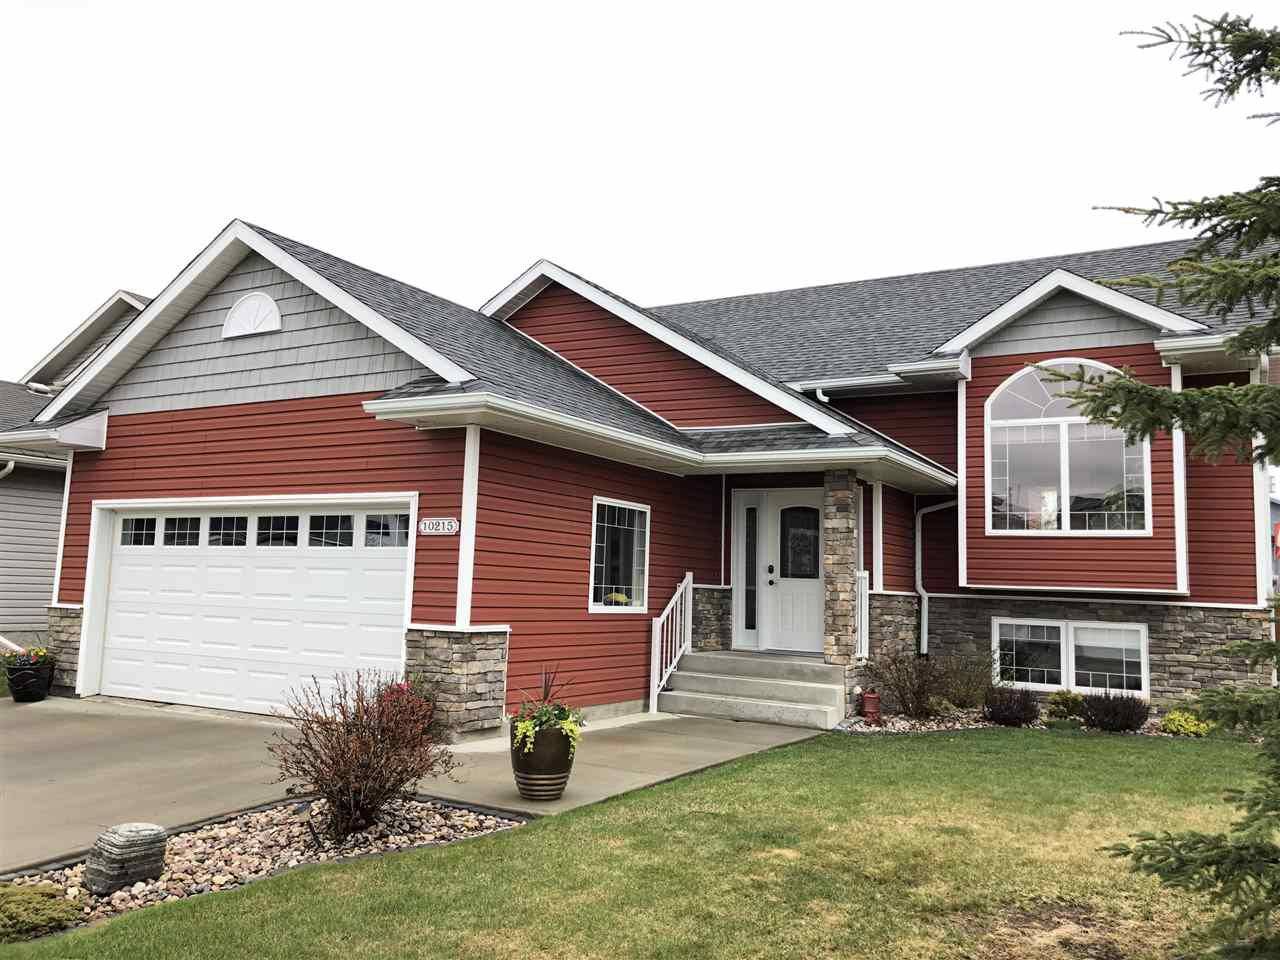 Main Photo: 10215 110 Avenue: Westlock House for sale : MLS®# E4157916